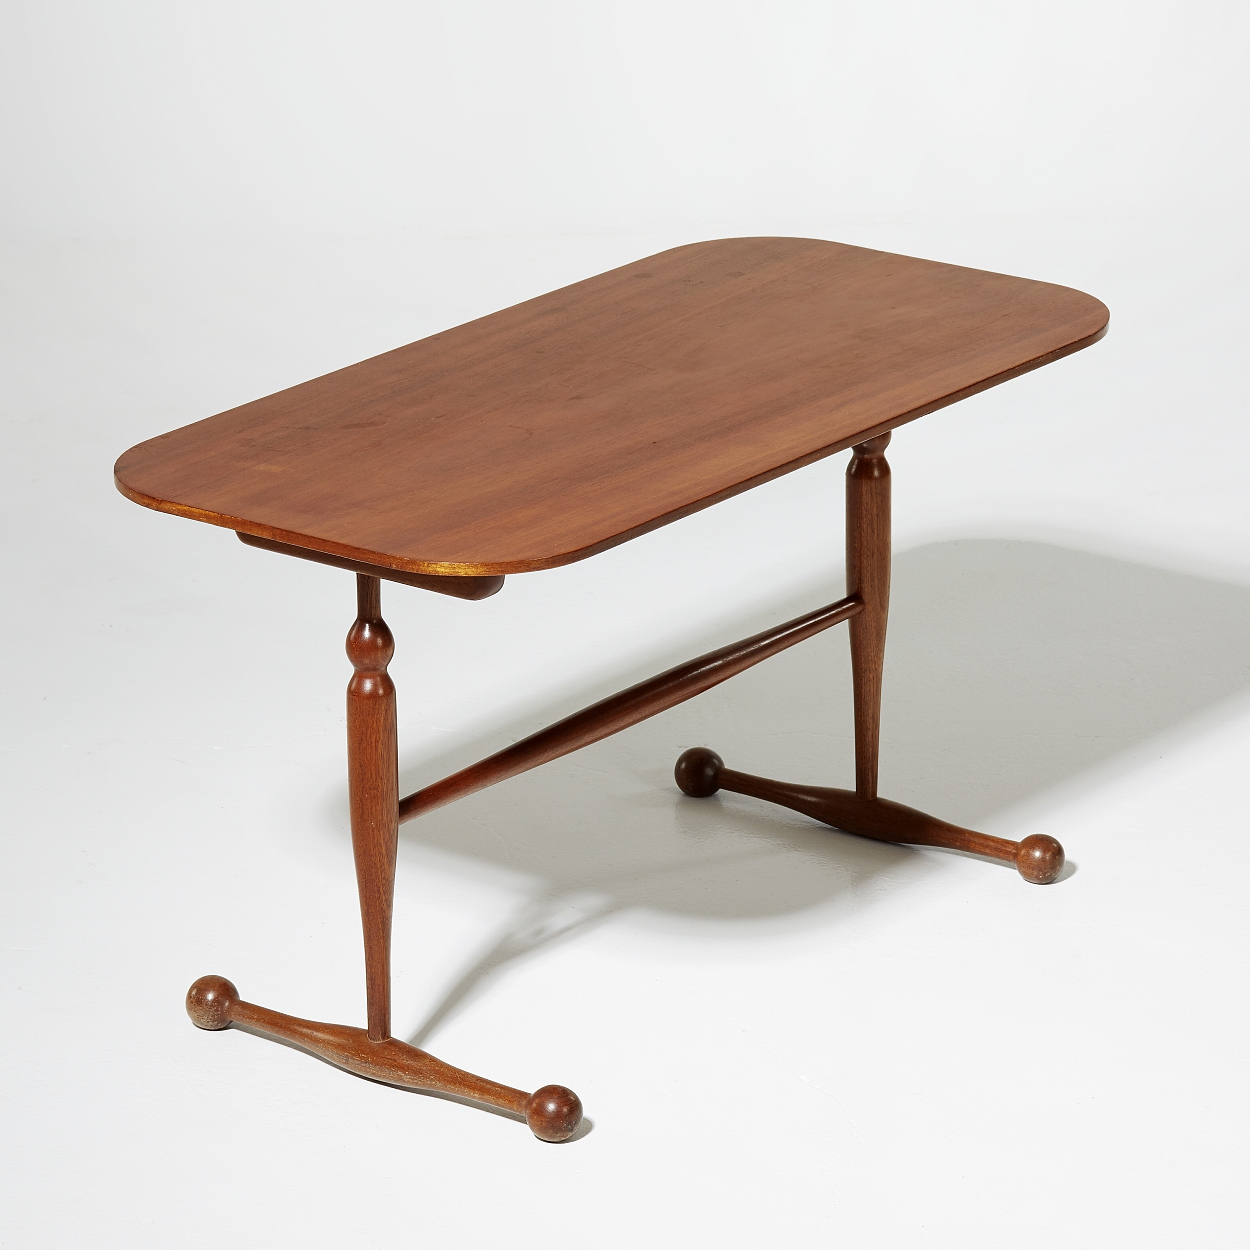 J. Frank & E. Ericson, table, Svenskt Tenn 1950´s